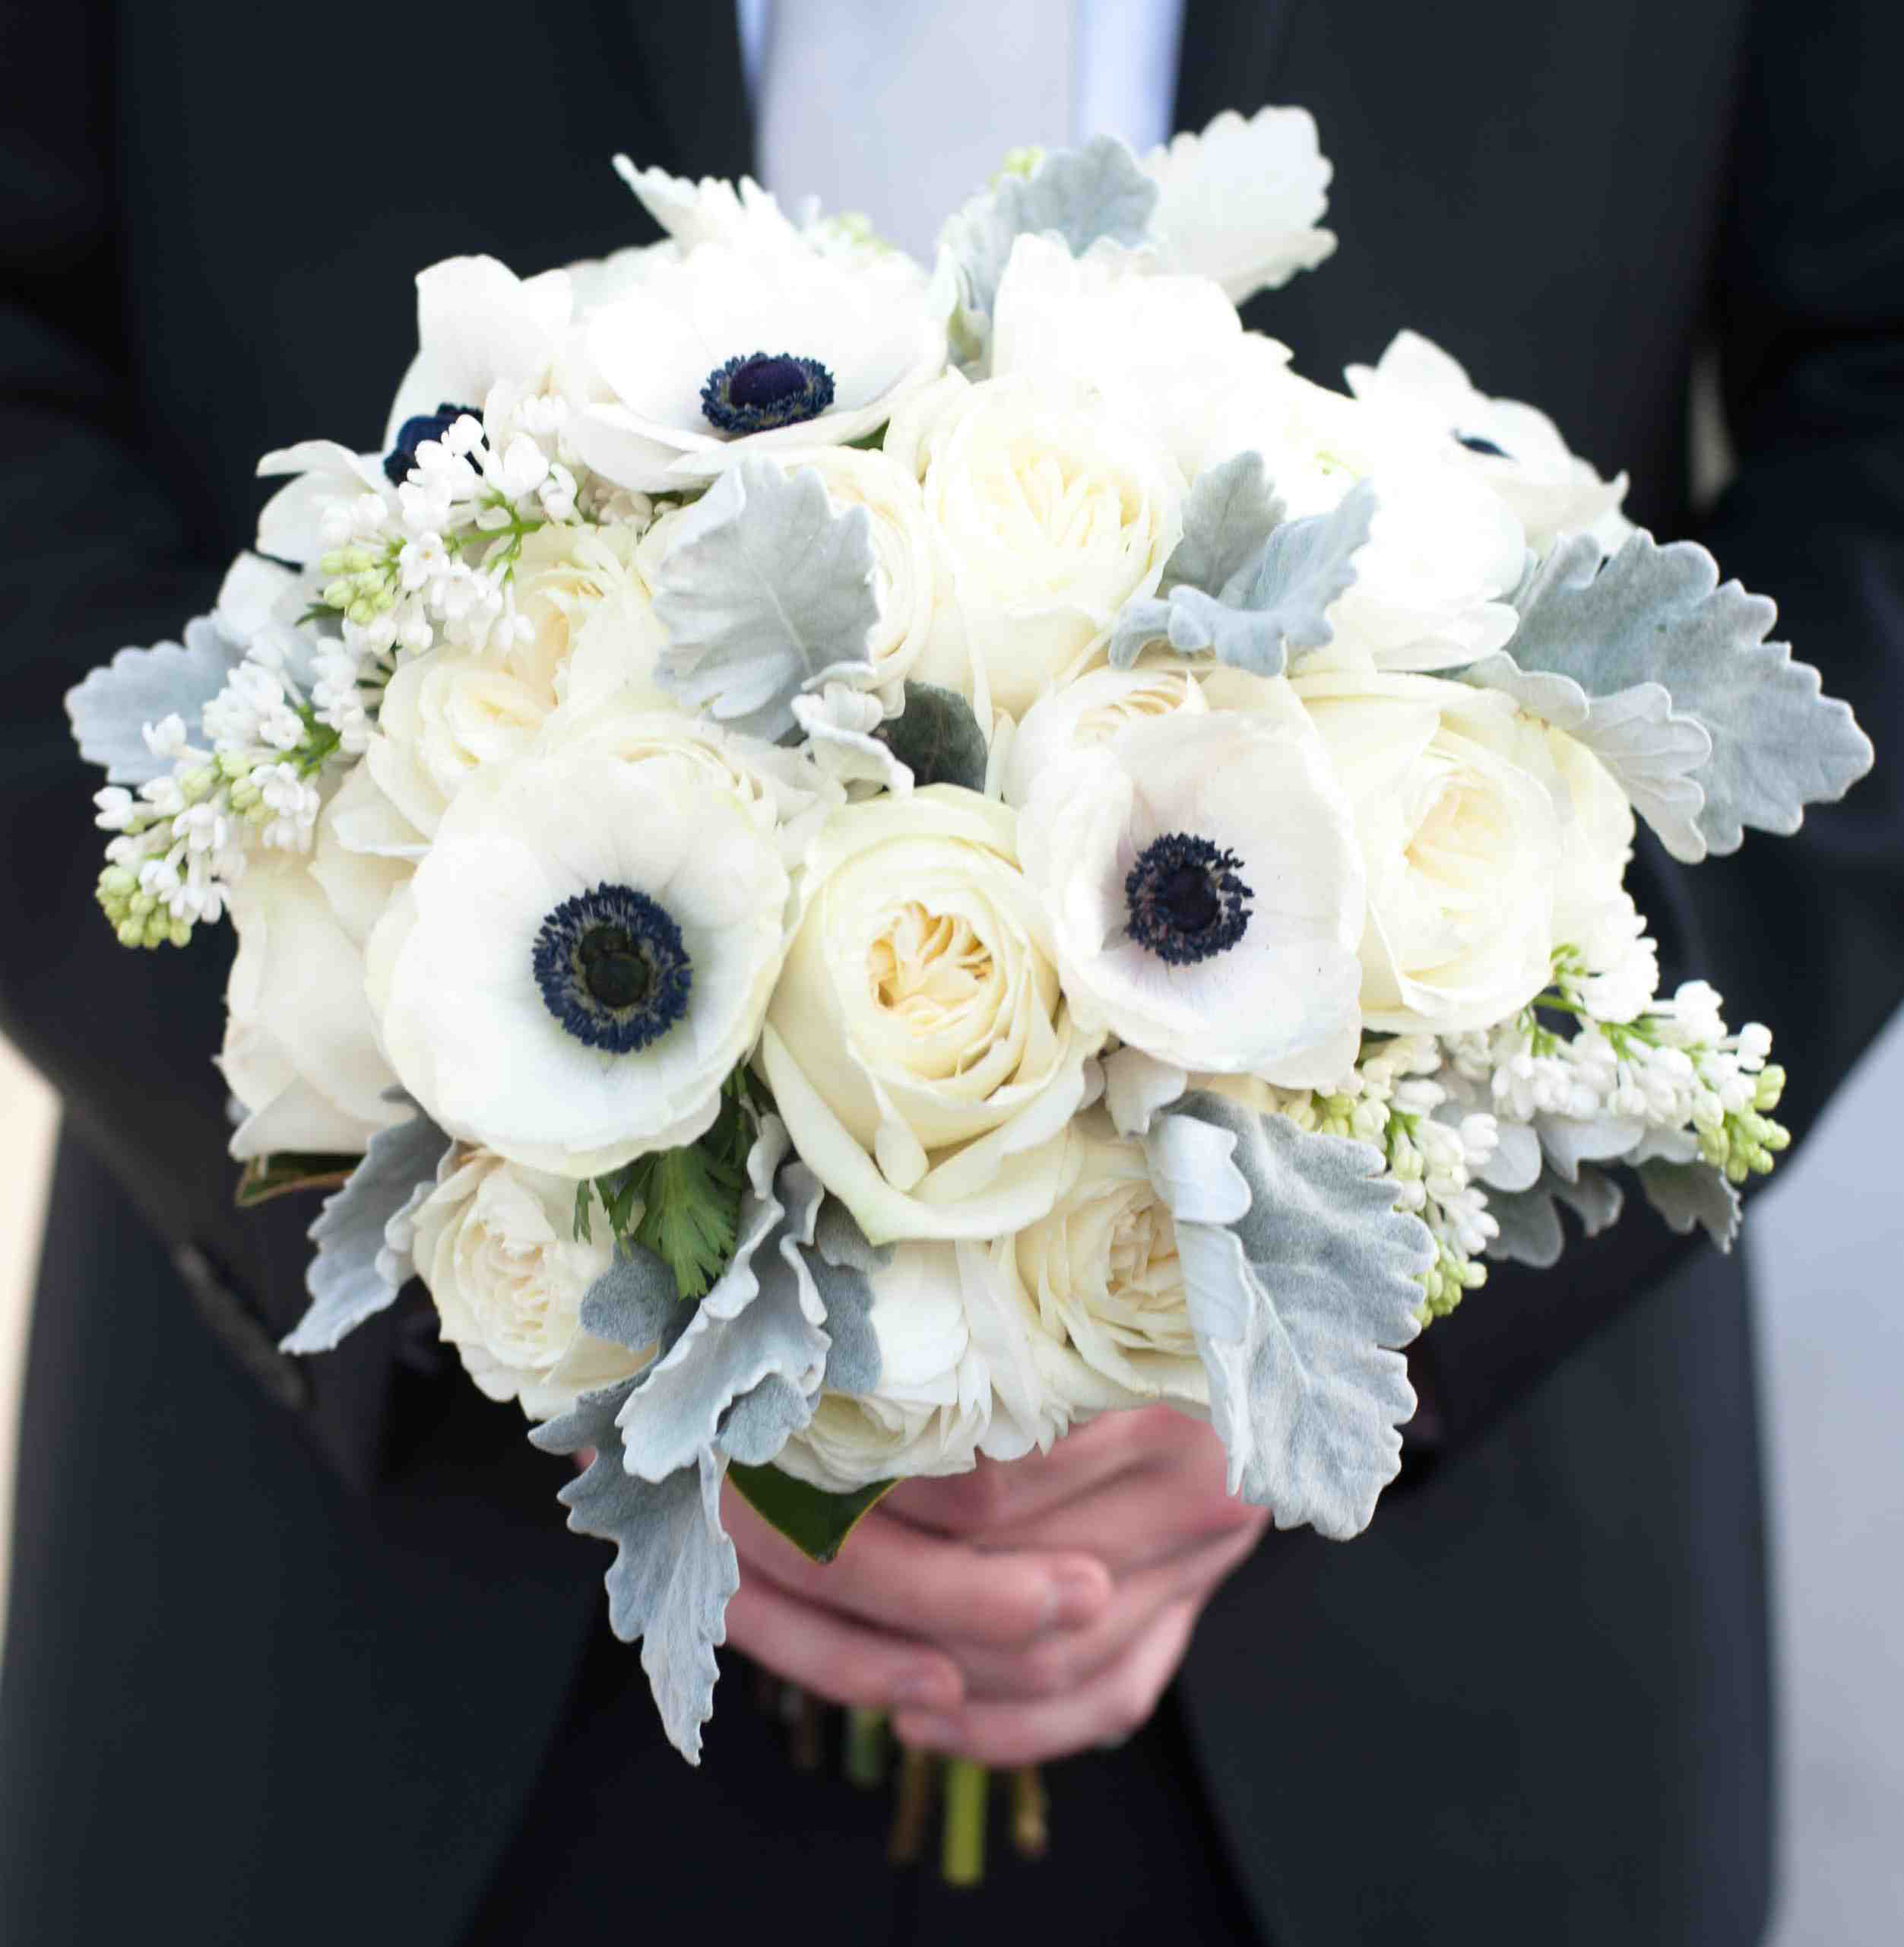 Wedding Ideas 15 Bouquet Ideas For A Winter Ceremony Inside Weddings